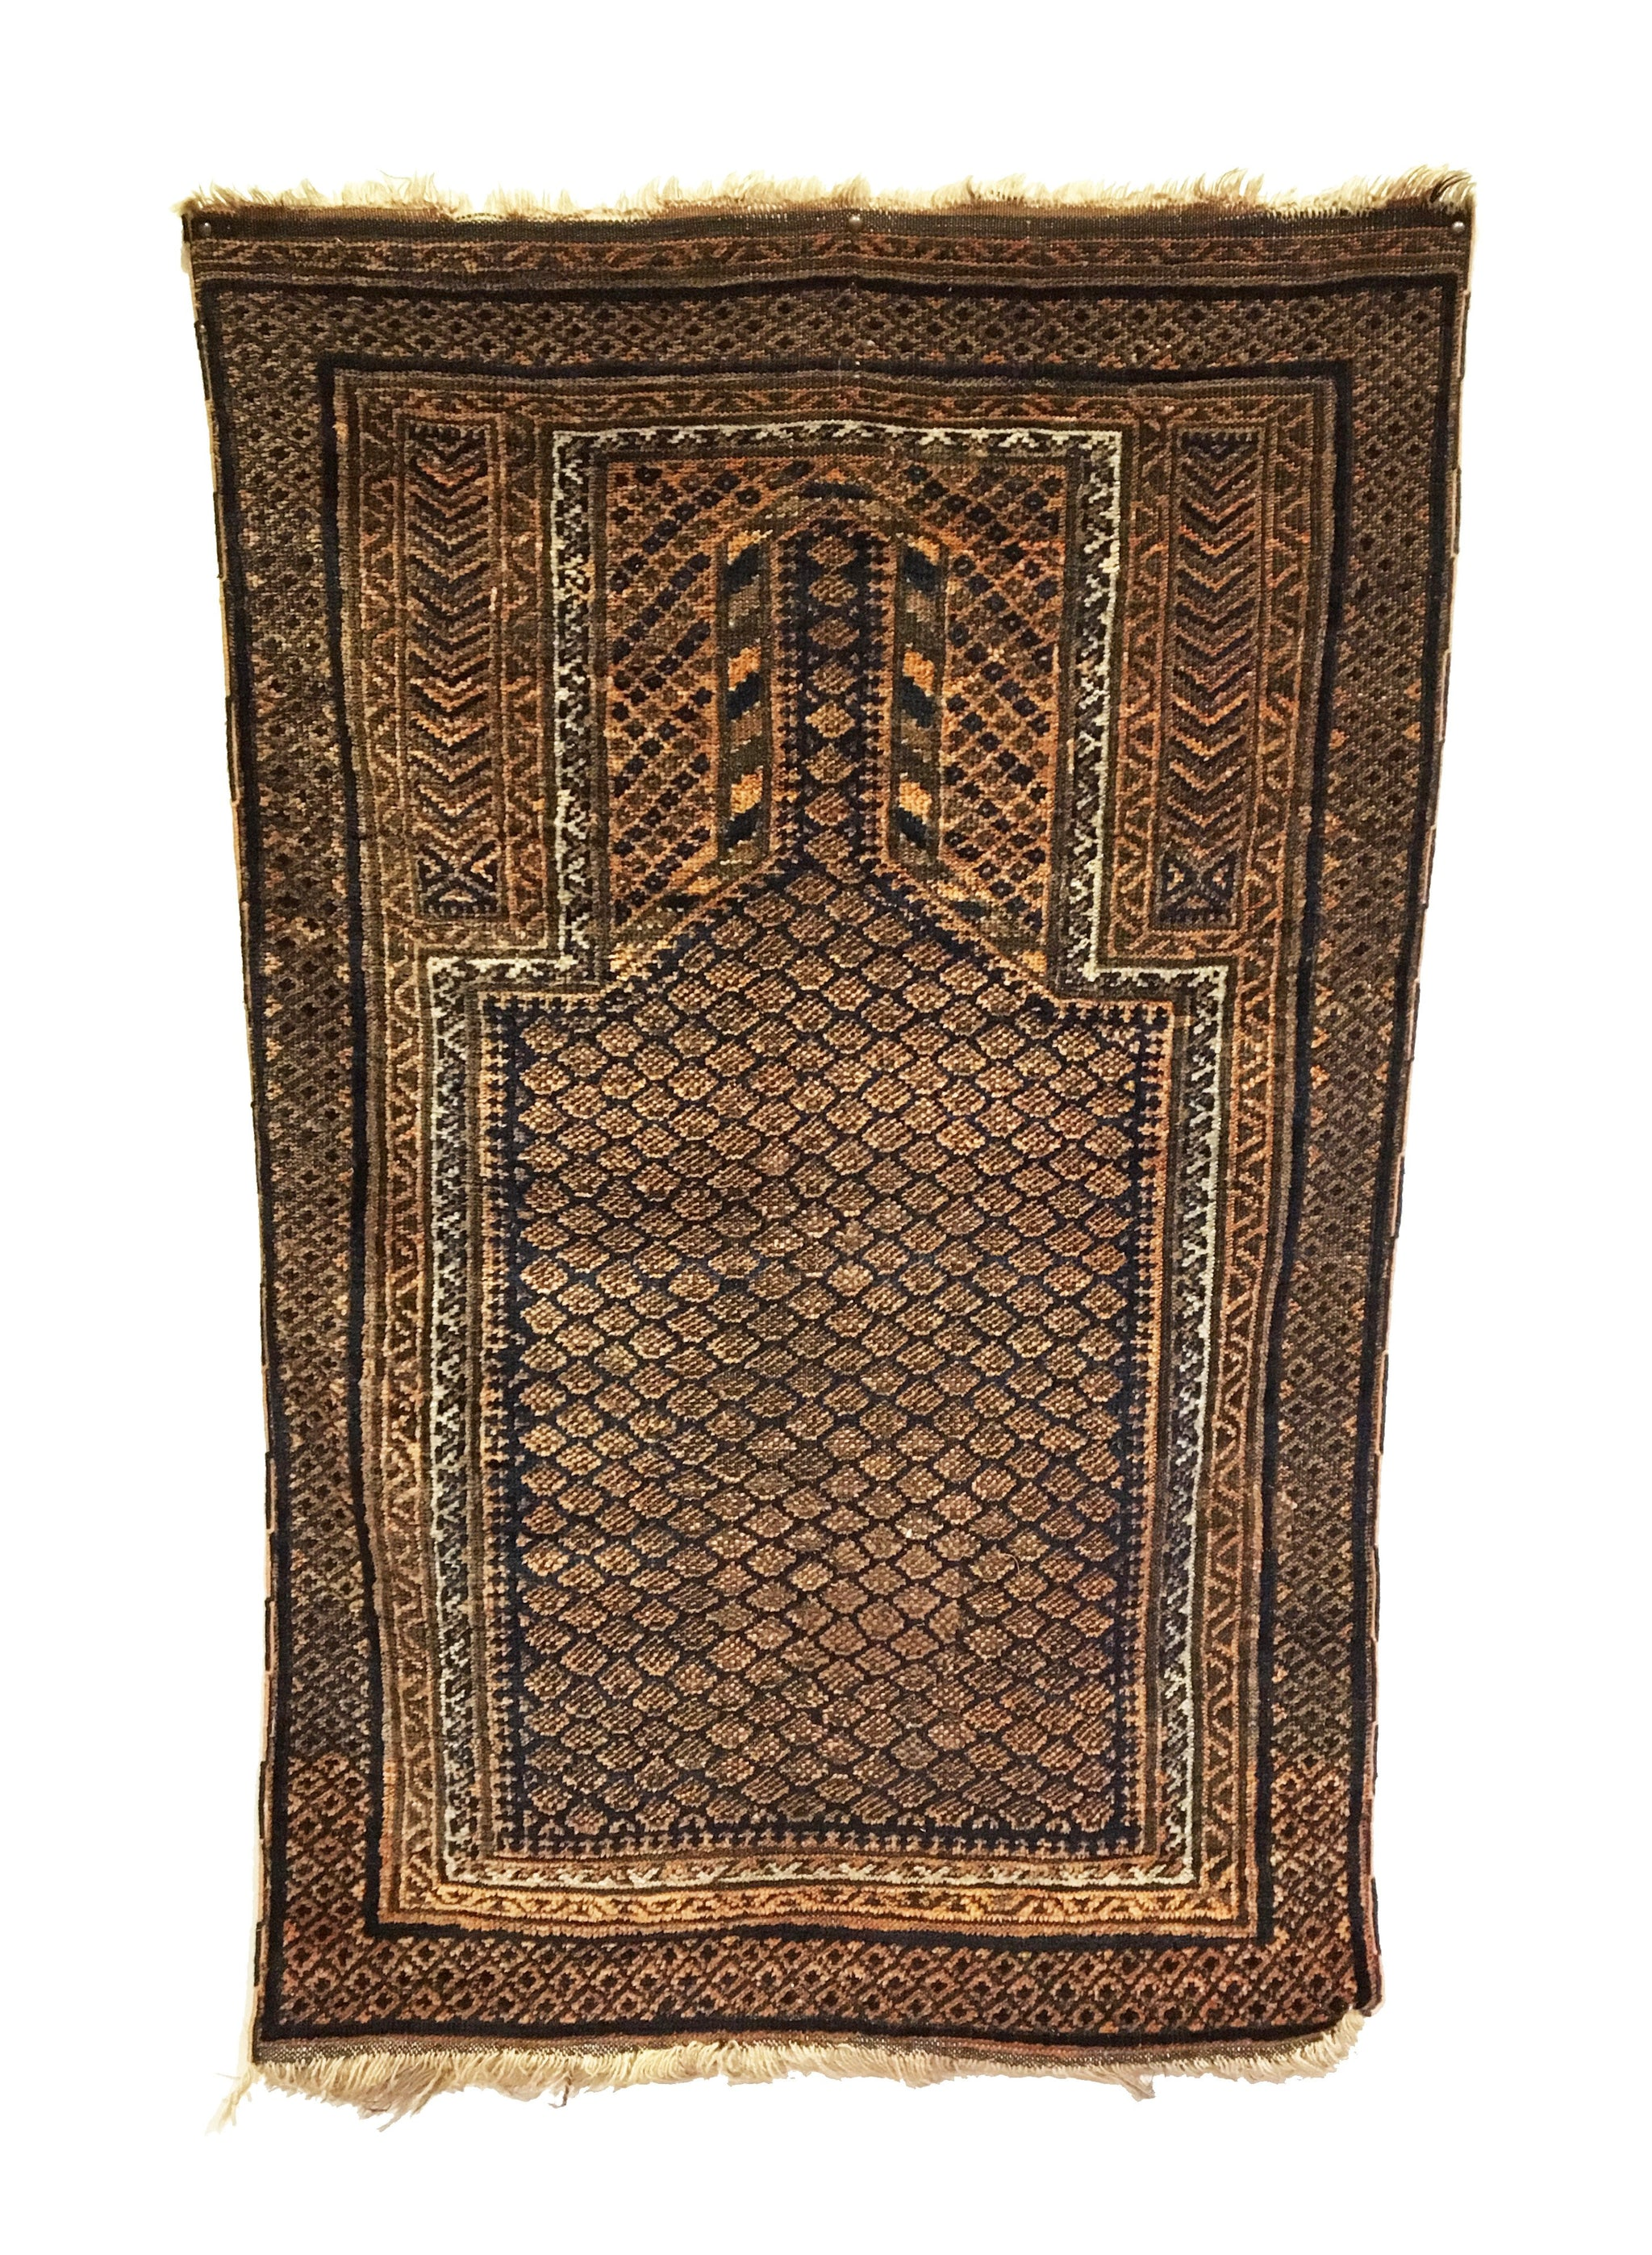 Antique Baluch Tribal Rug 2'7 x 4'1